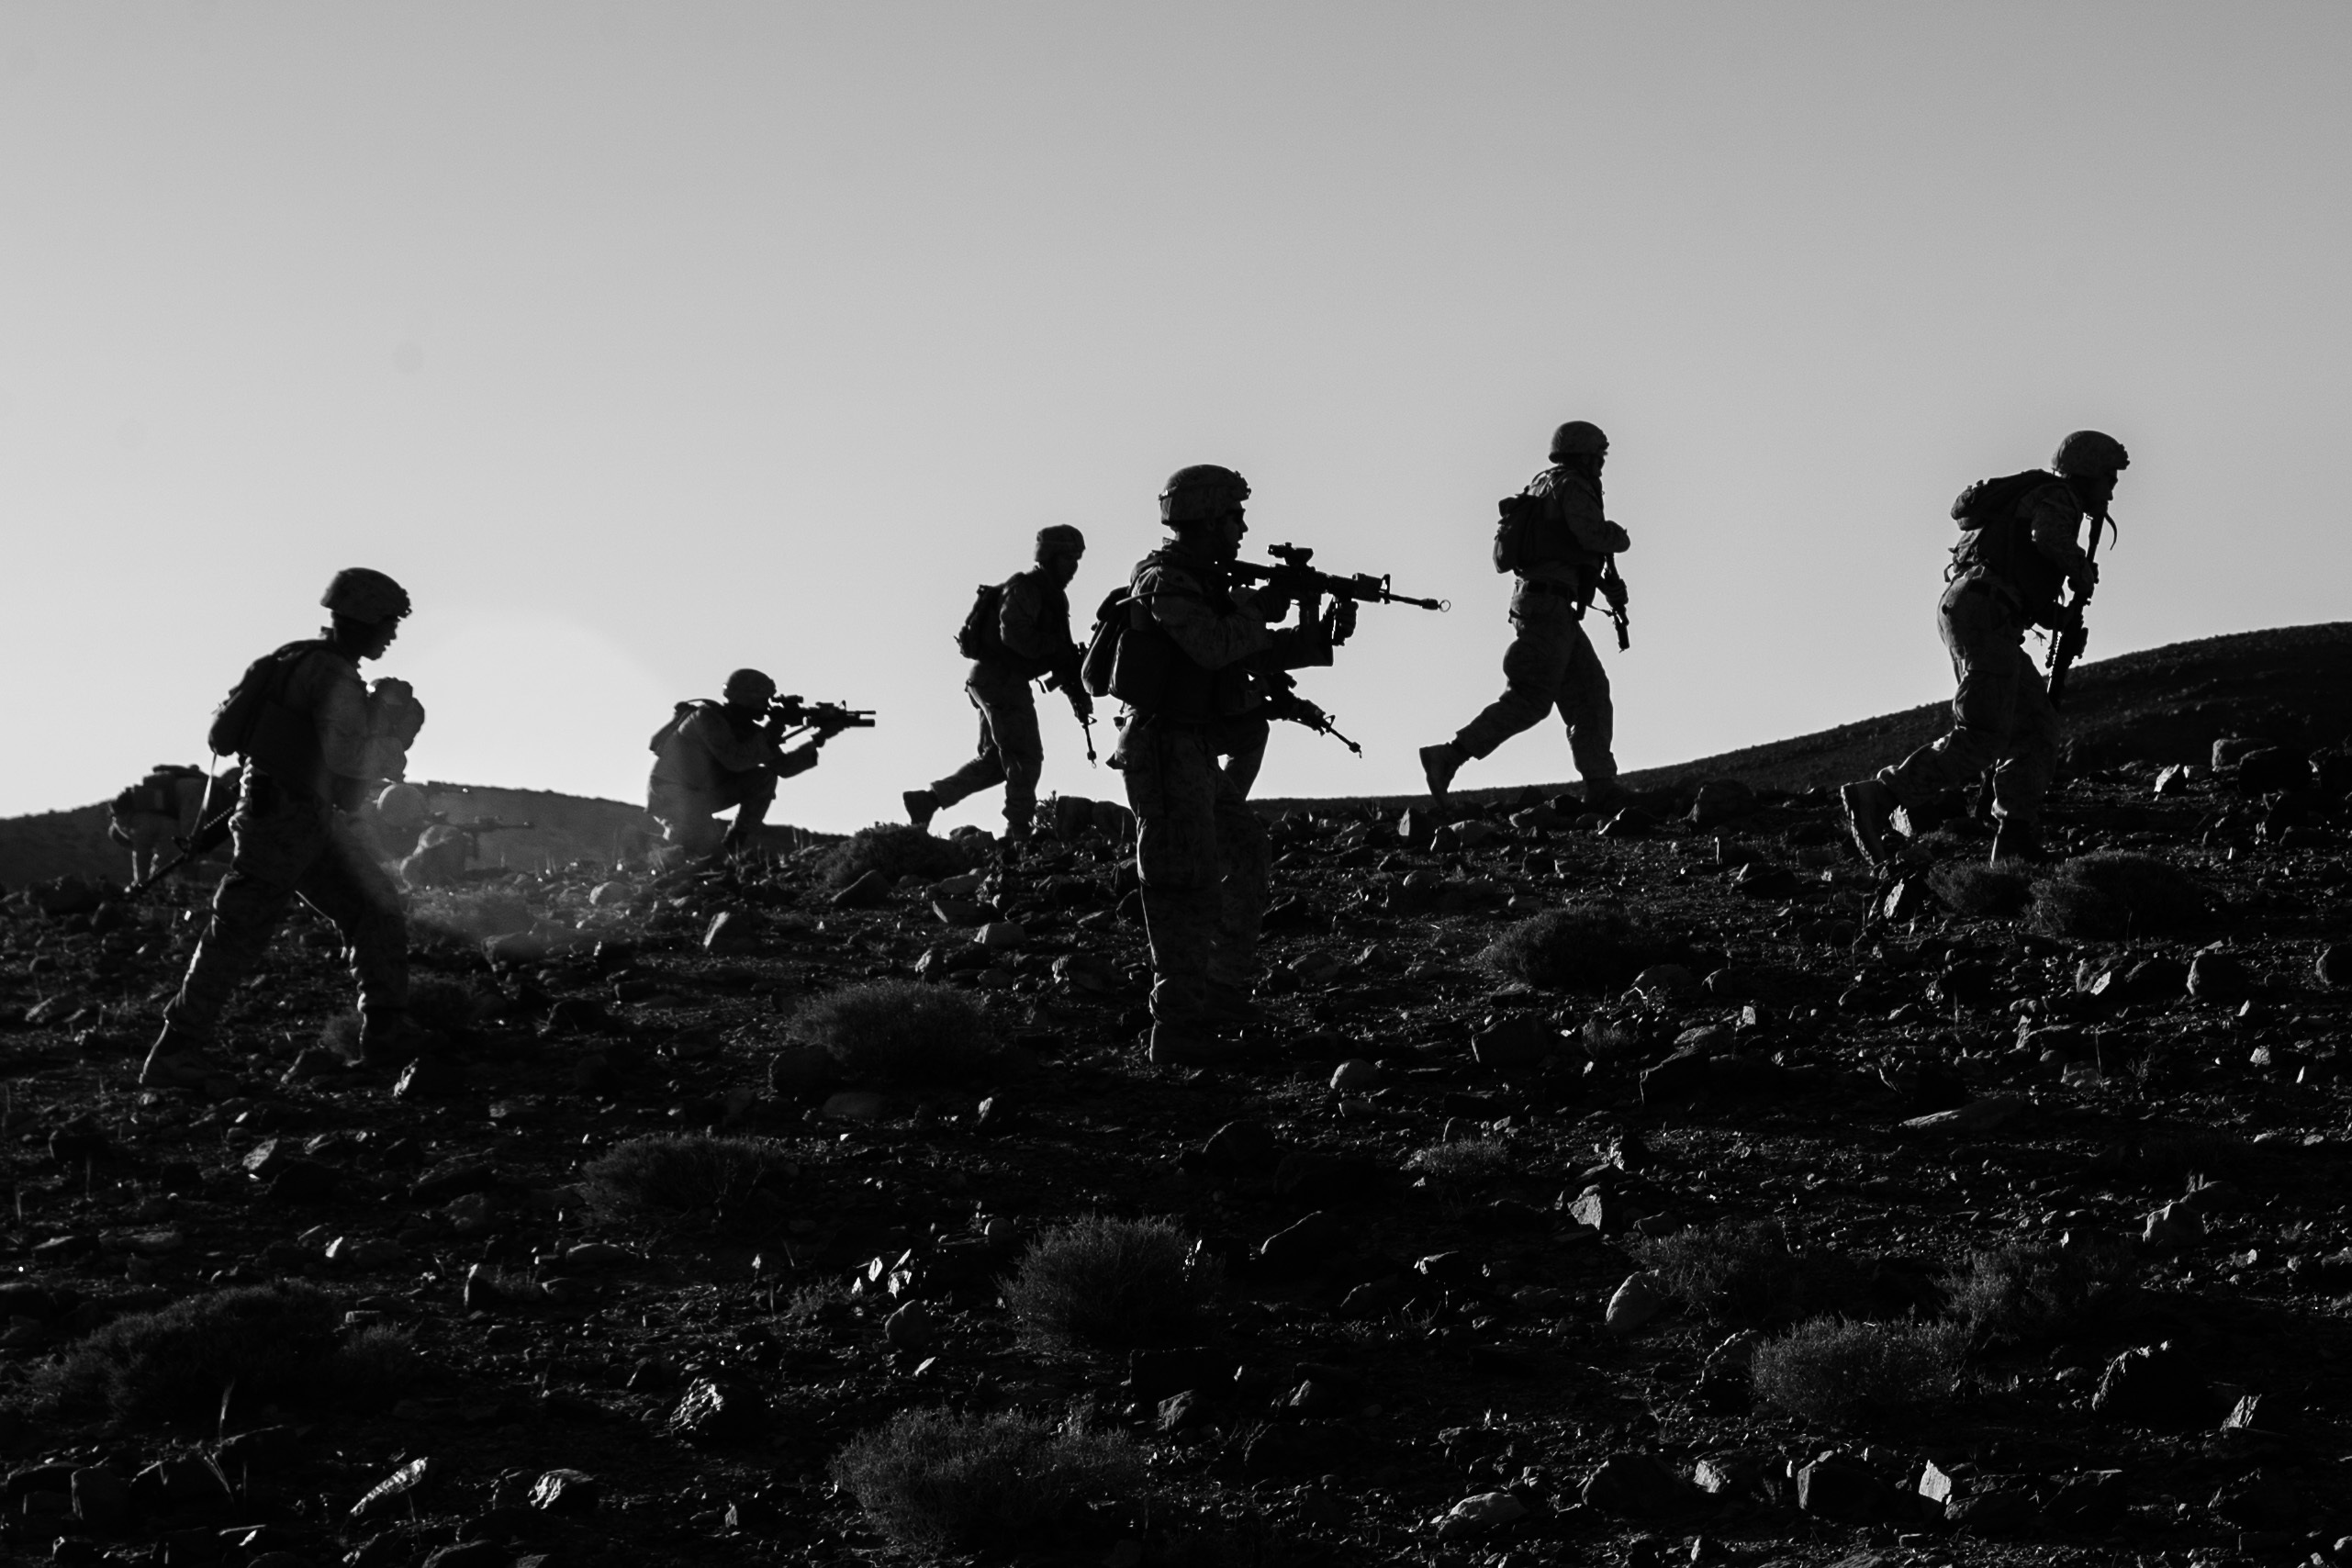 Marines assigned the 6th Marine Regiment, 26th Marine Expeditionary Unit move uphill during training operations in Jordan on April 24, 2018. A new court ruling will allow